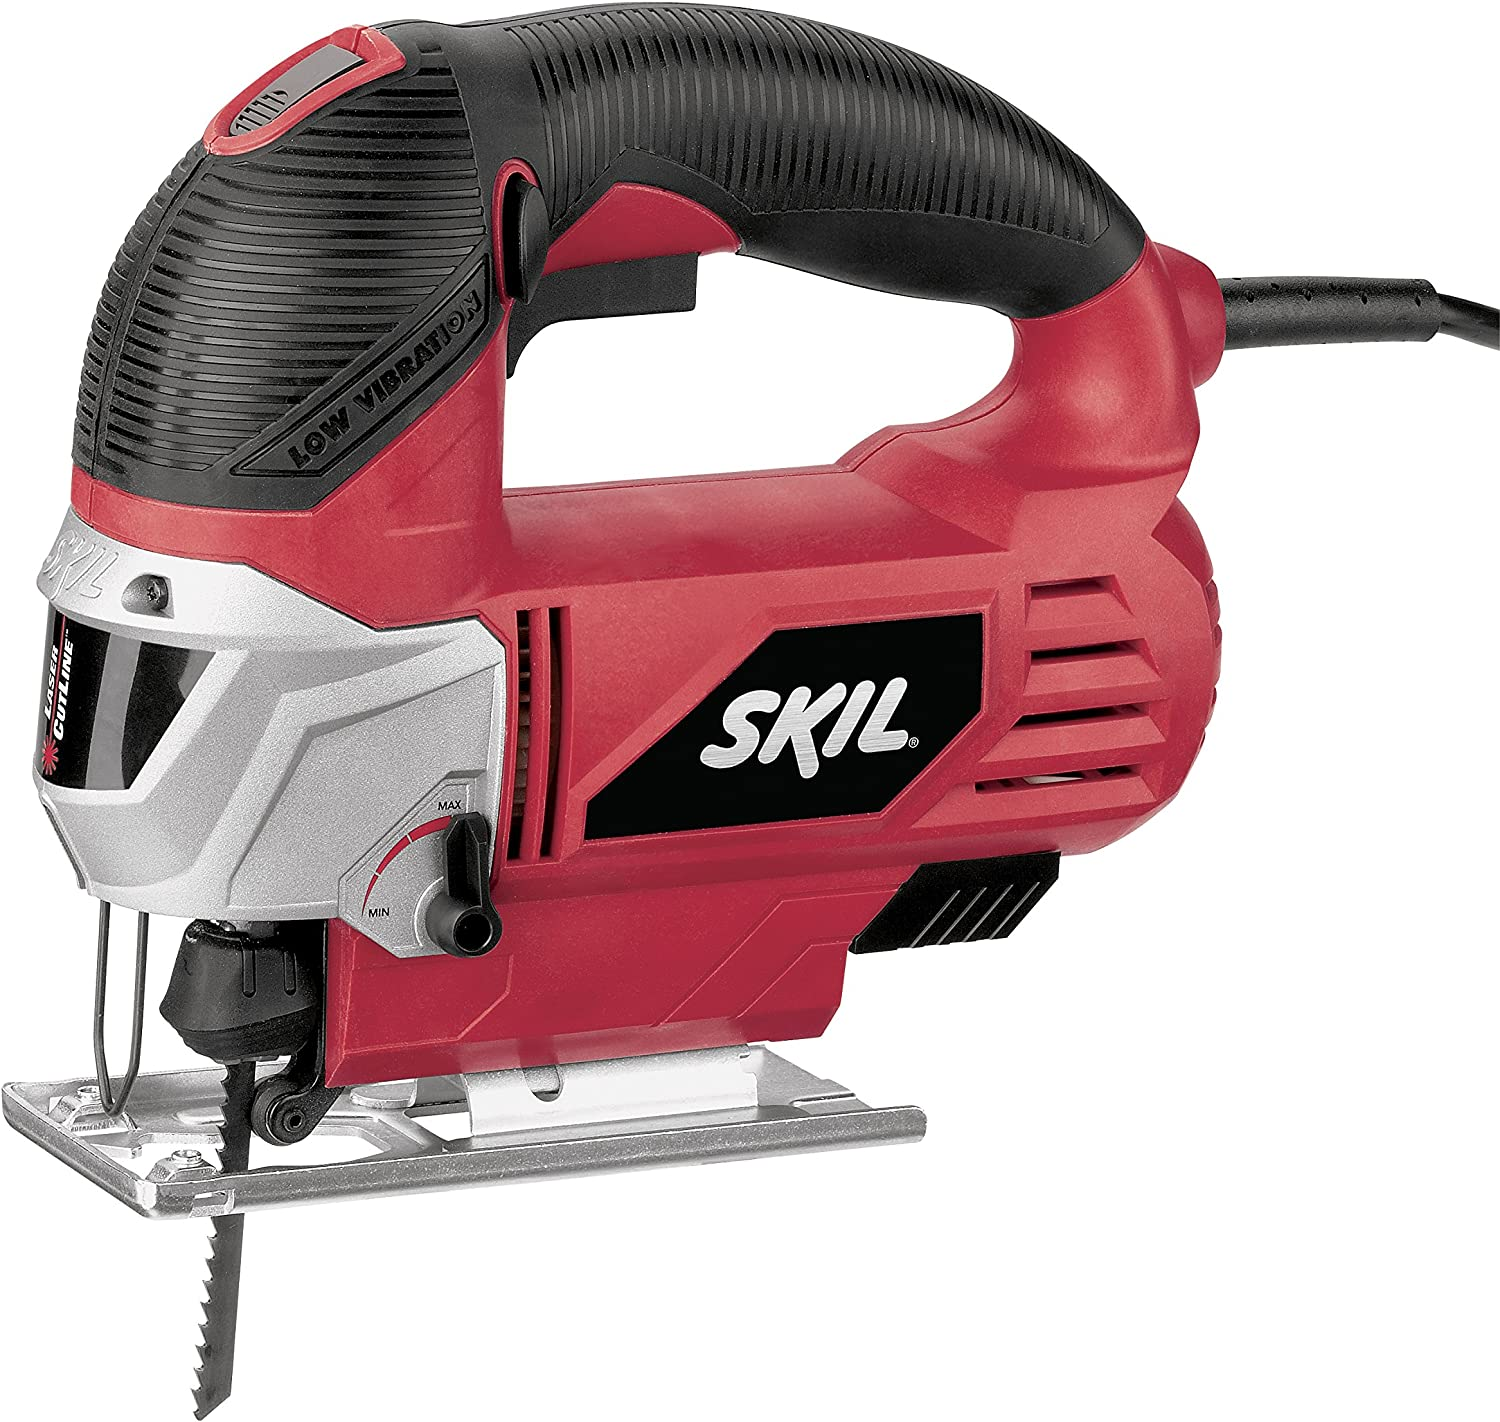 Skil Orbital Action Laser Jigsaw